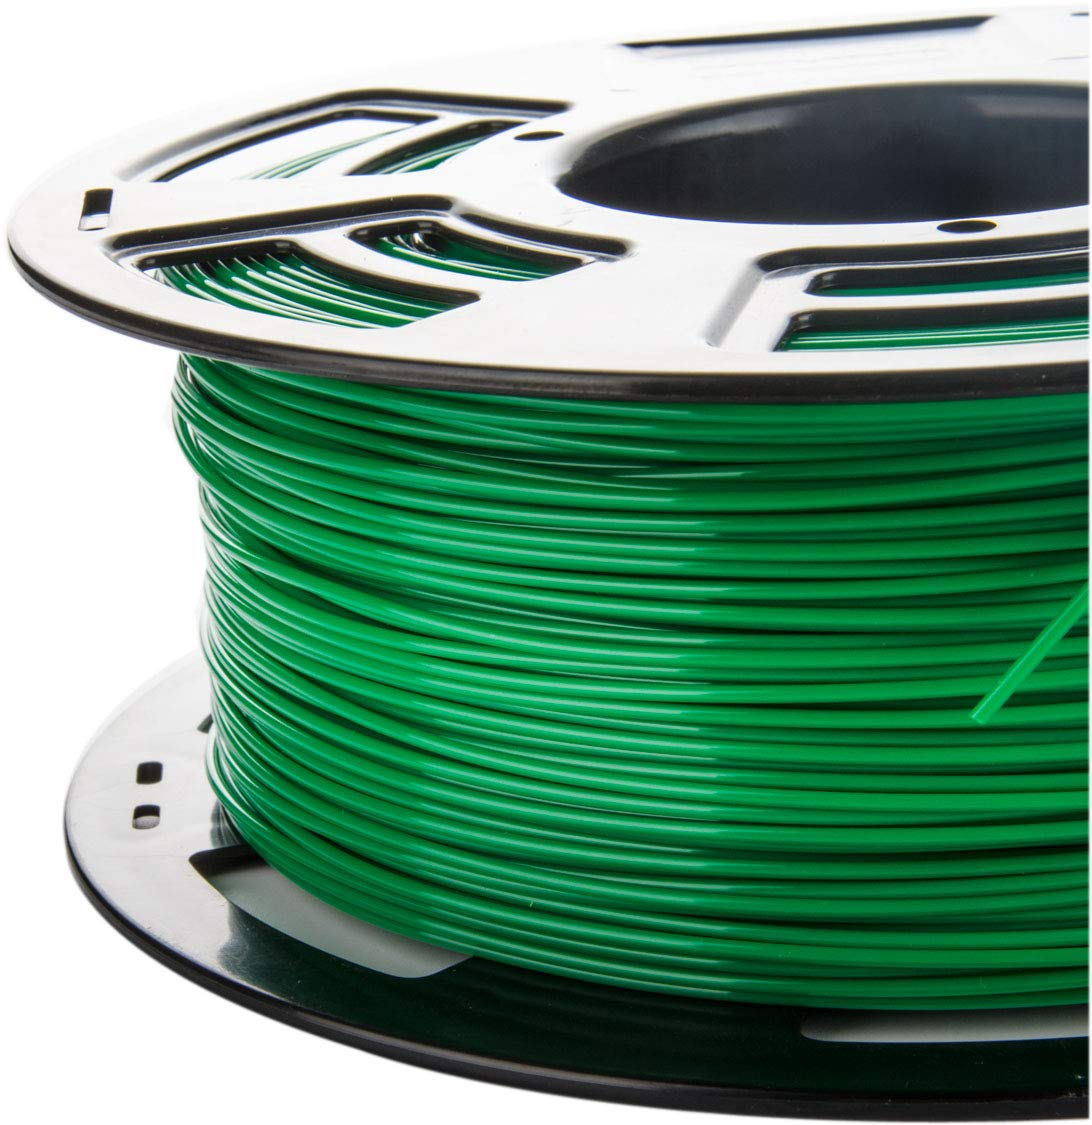 Stronghero3D Desktop FDM 3D printer 1.75mm PLA filament Green 1kg(2.2 lbs) Dimension Accuracy +/-0.05mm